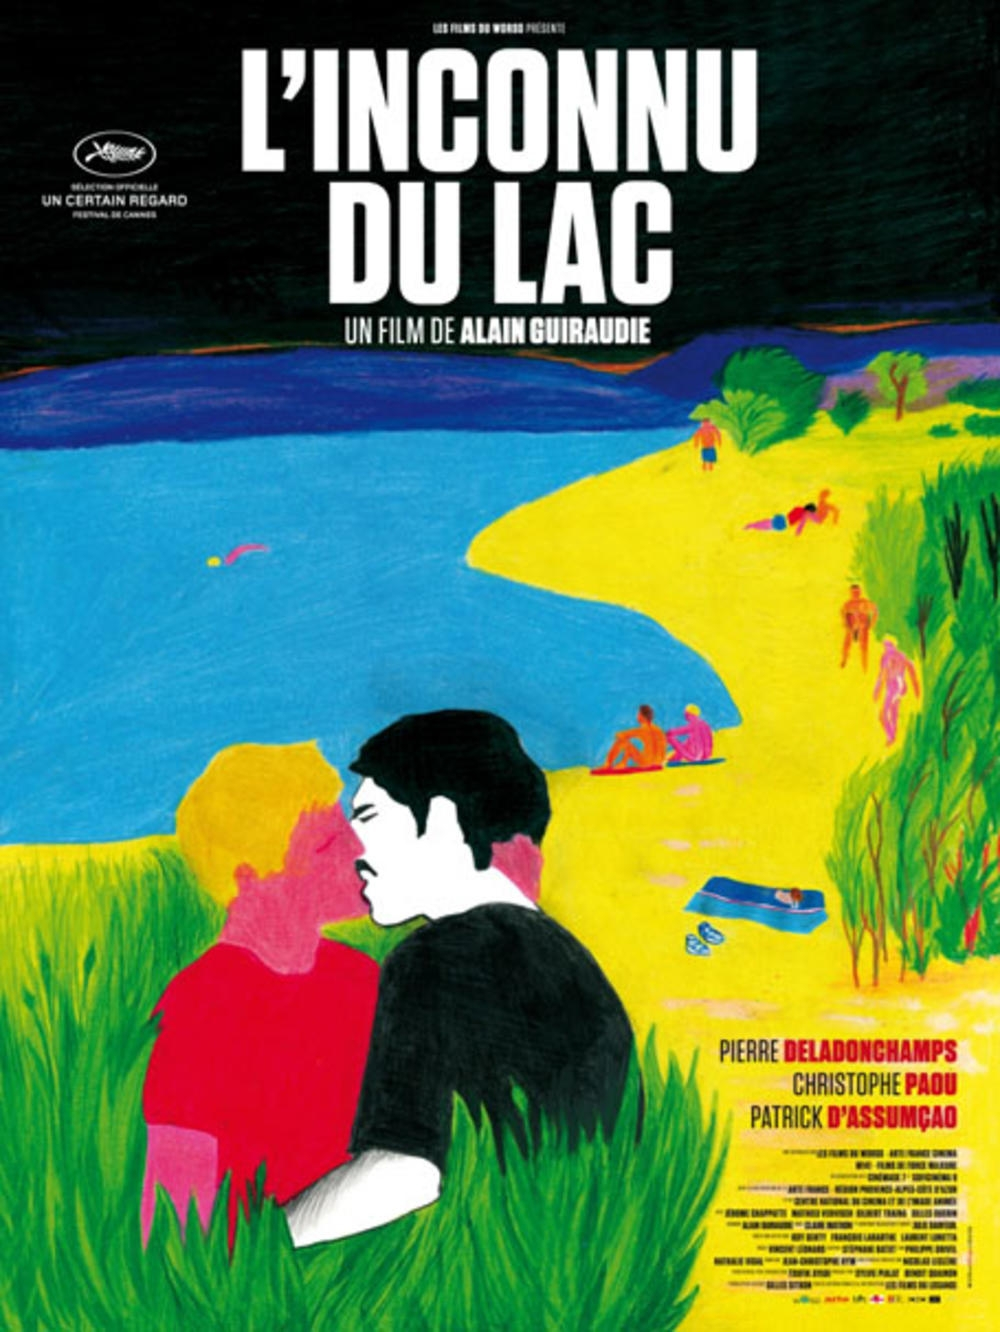 l-affiche-du-film-l-inconnu-du-lac-censuree-a-versailles-et-saint-cloud,M113500.jpg